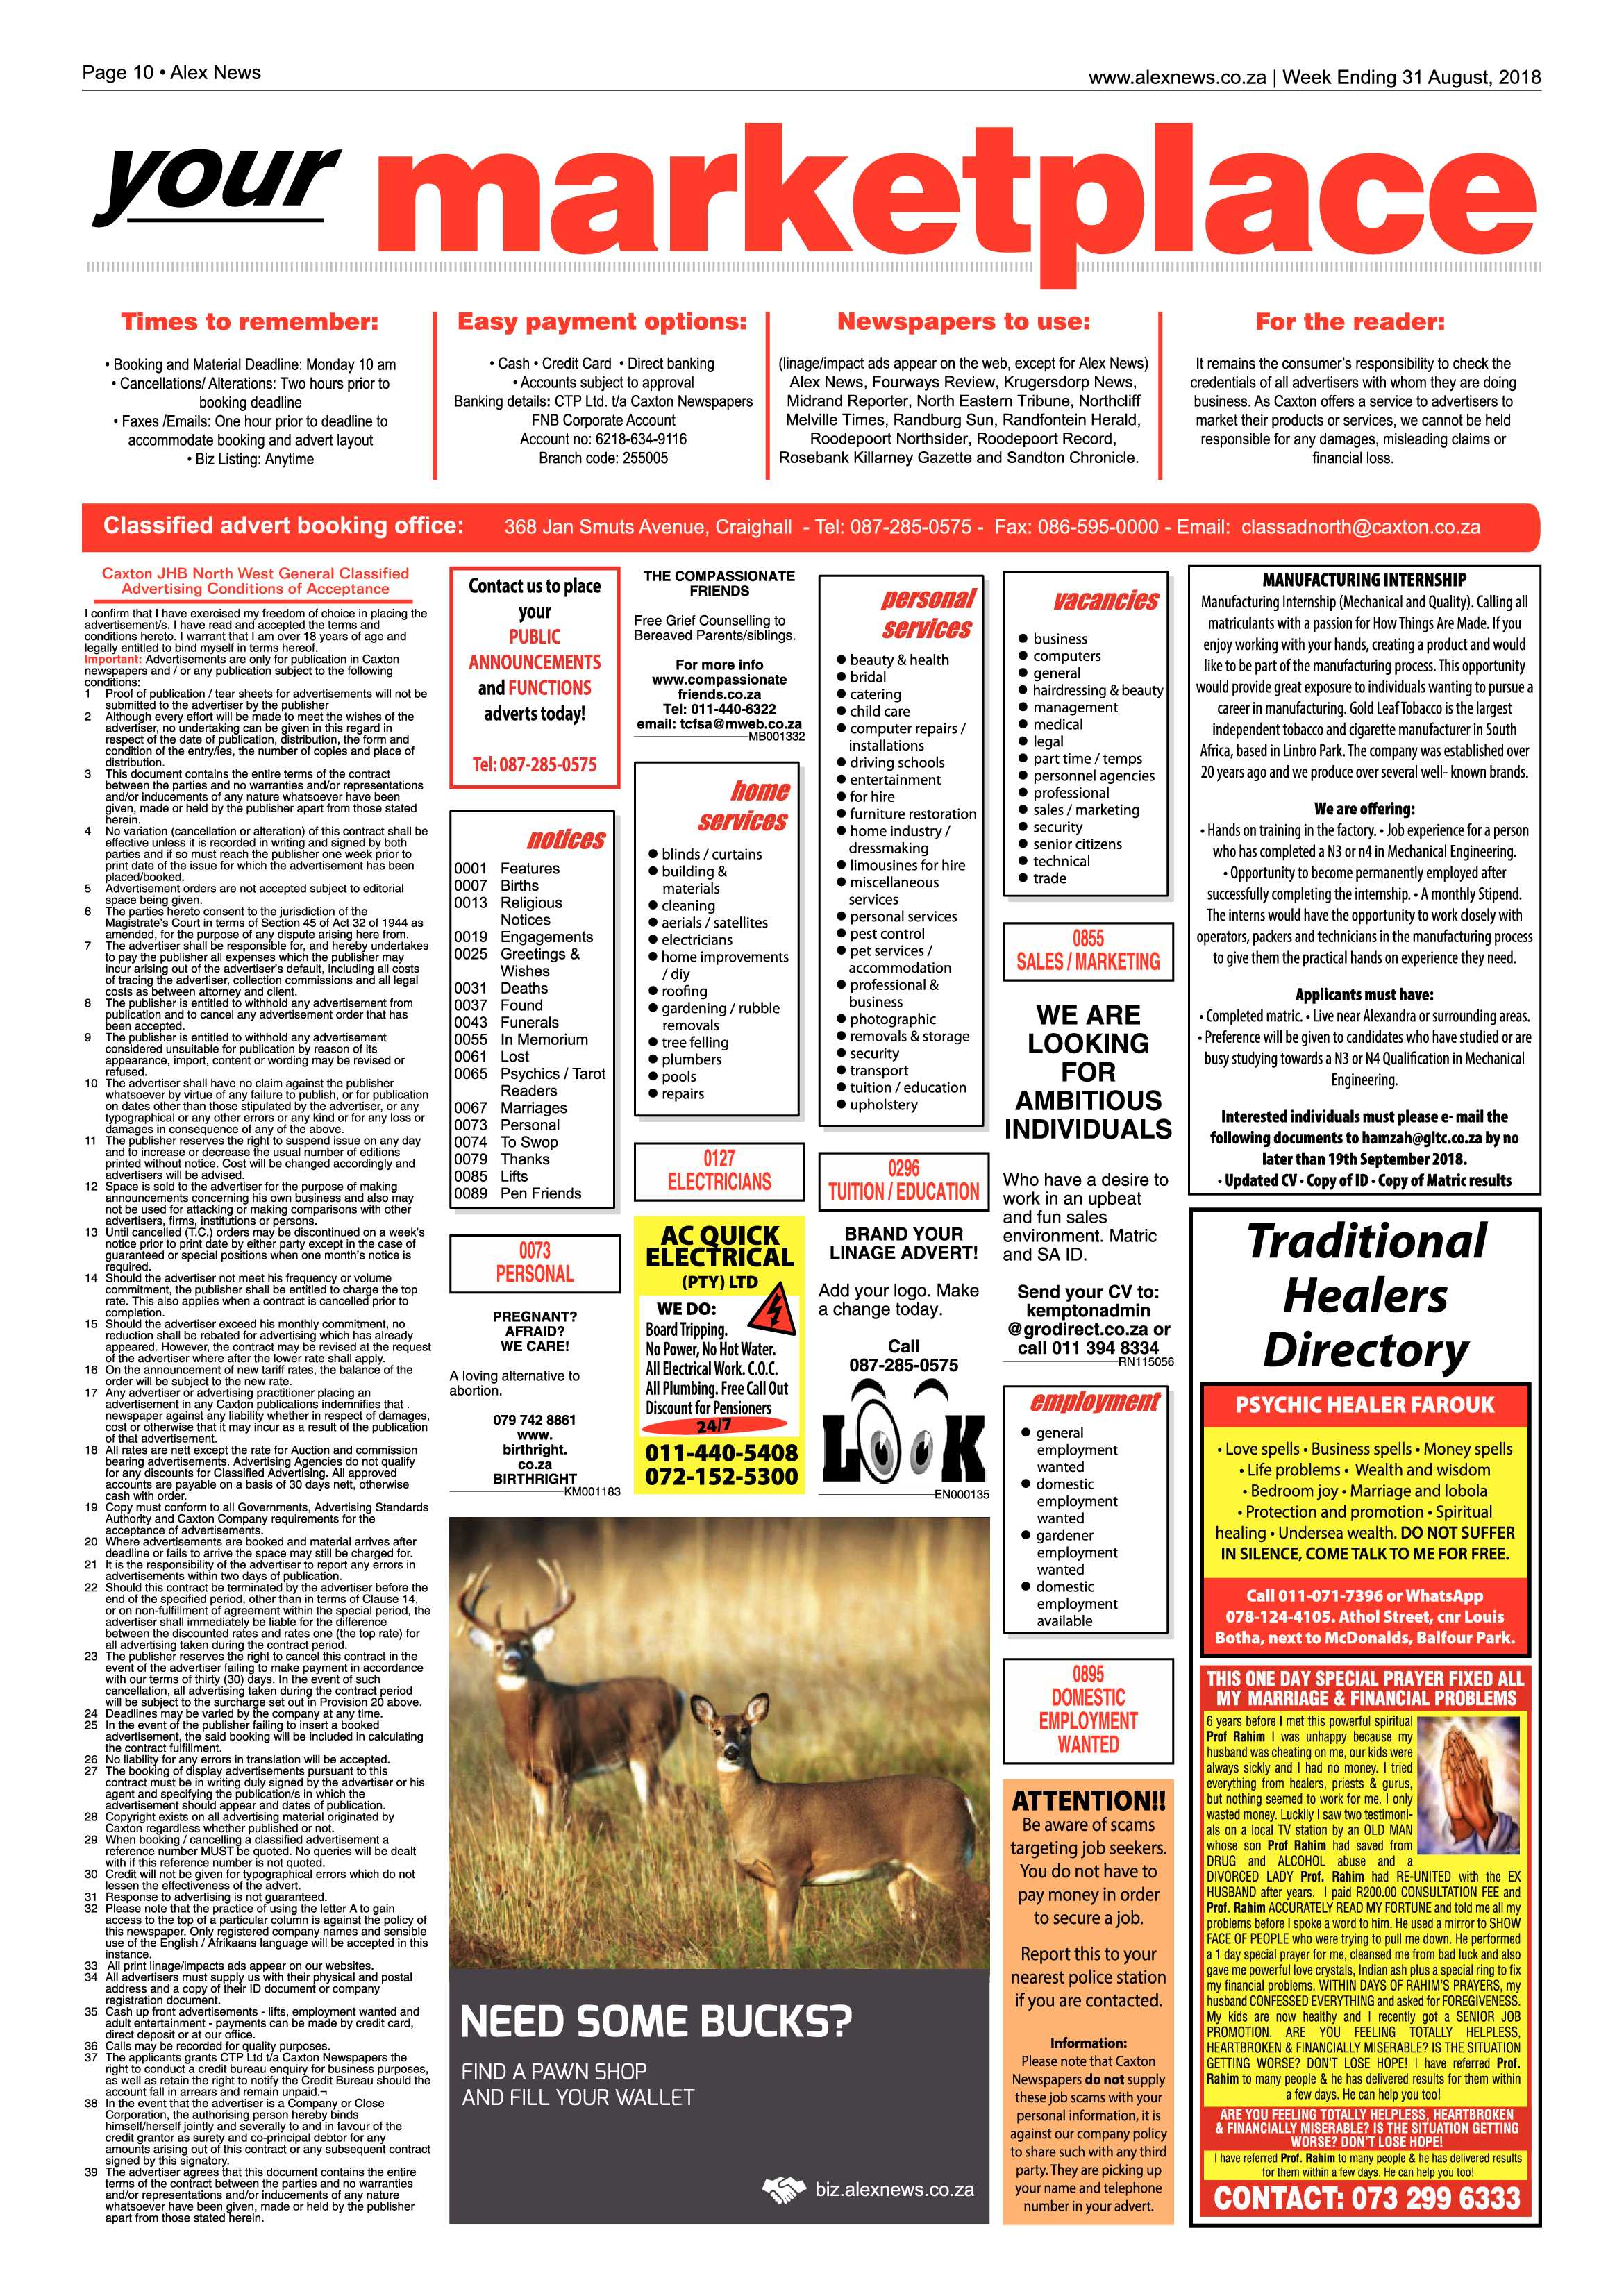 alex-31-august-2018-epapers-page-10